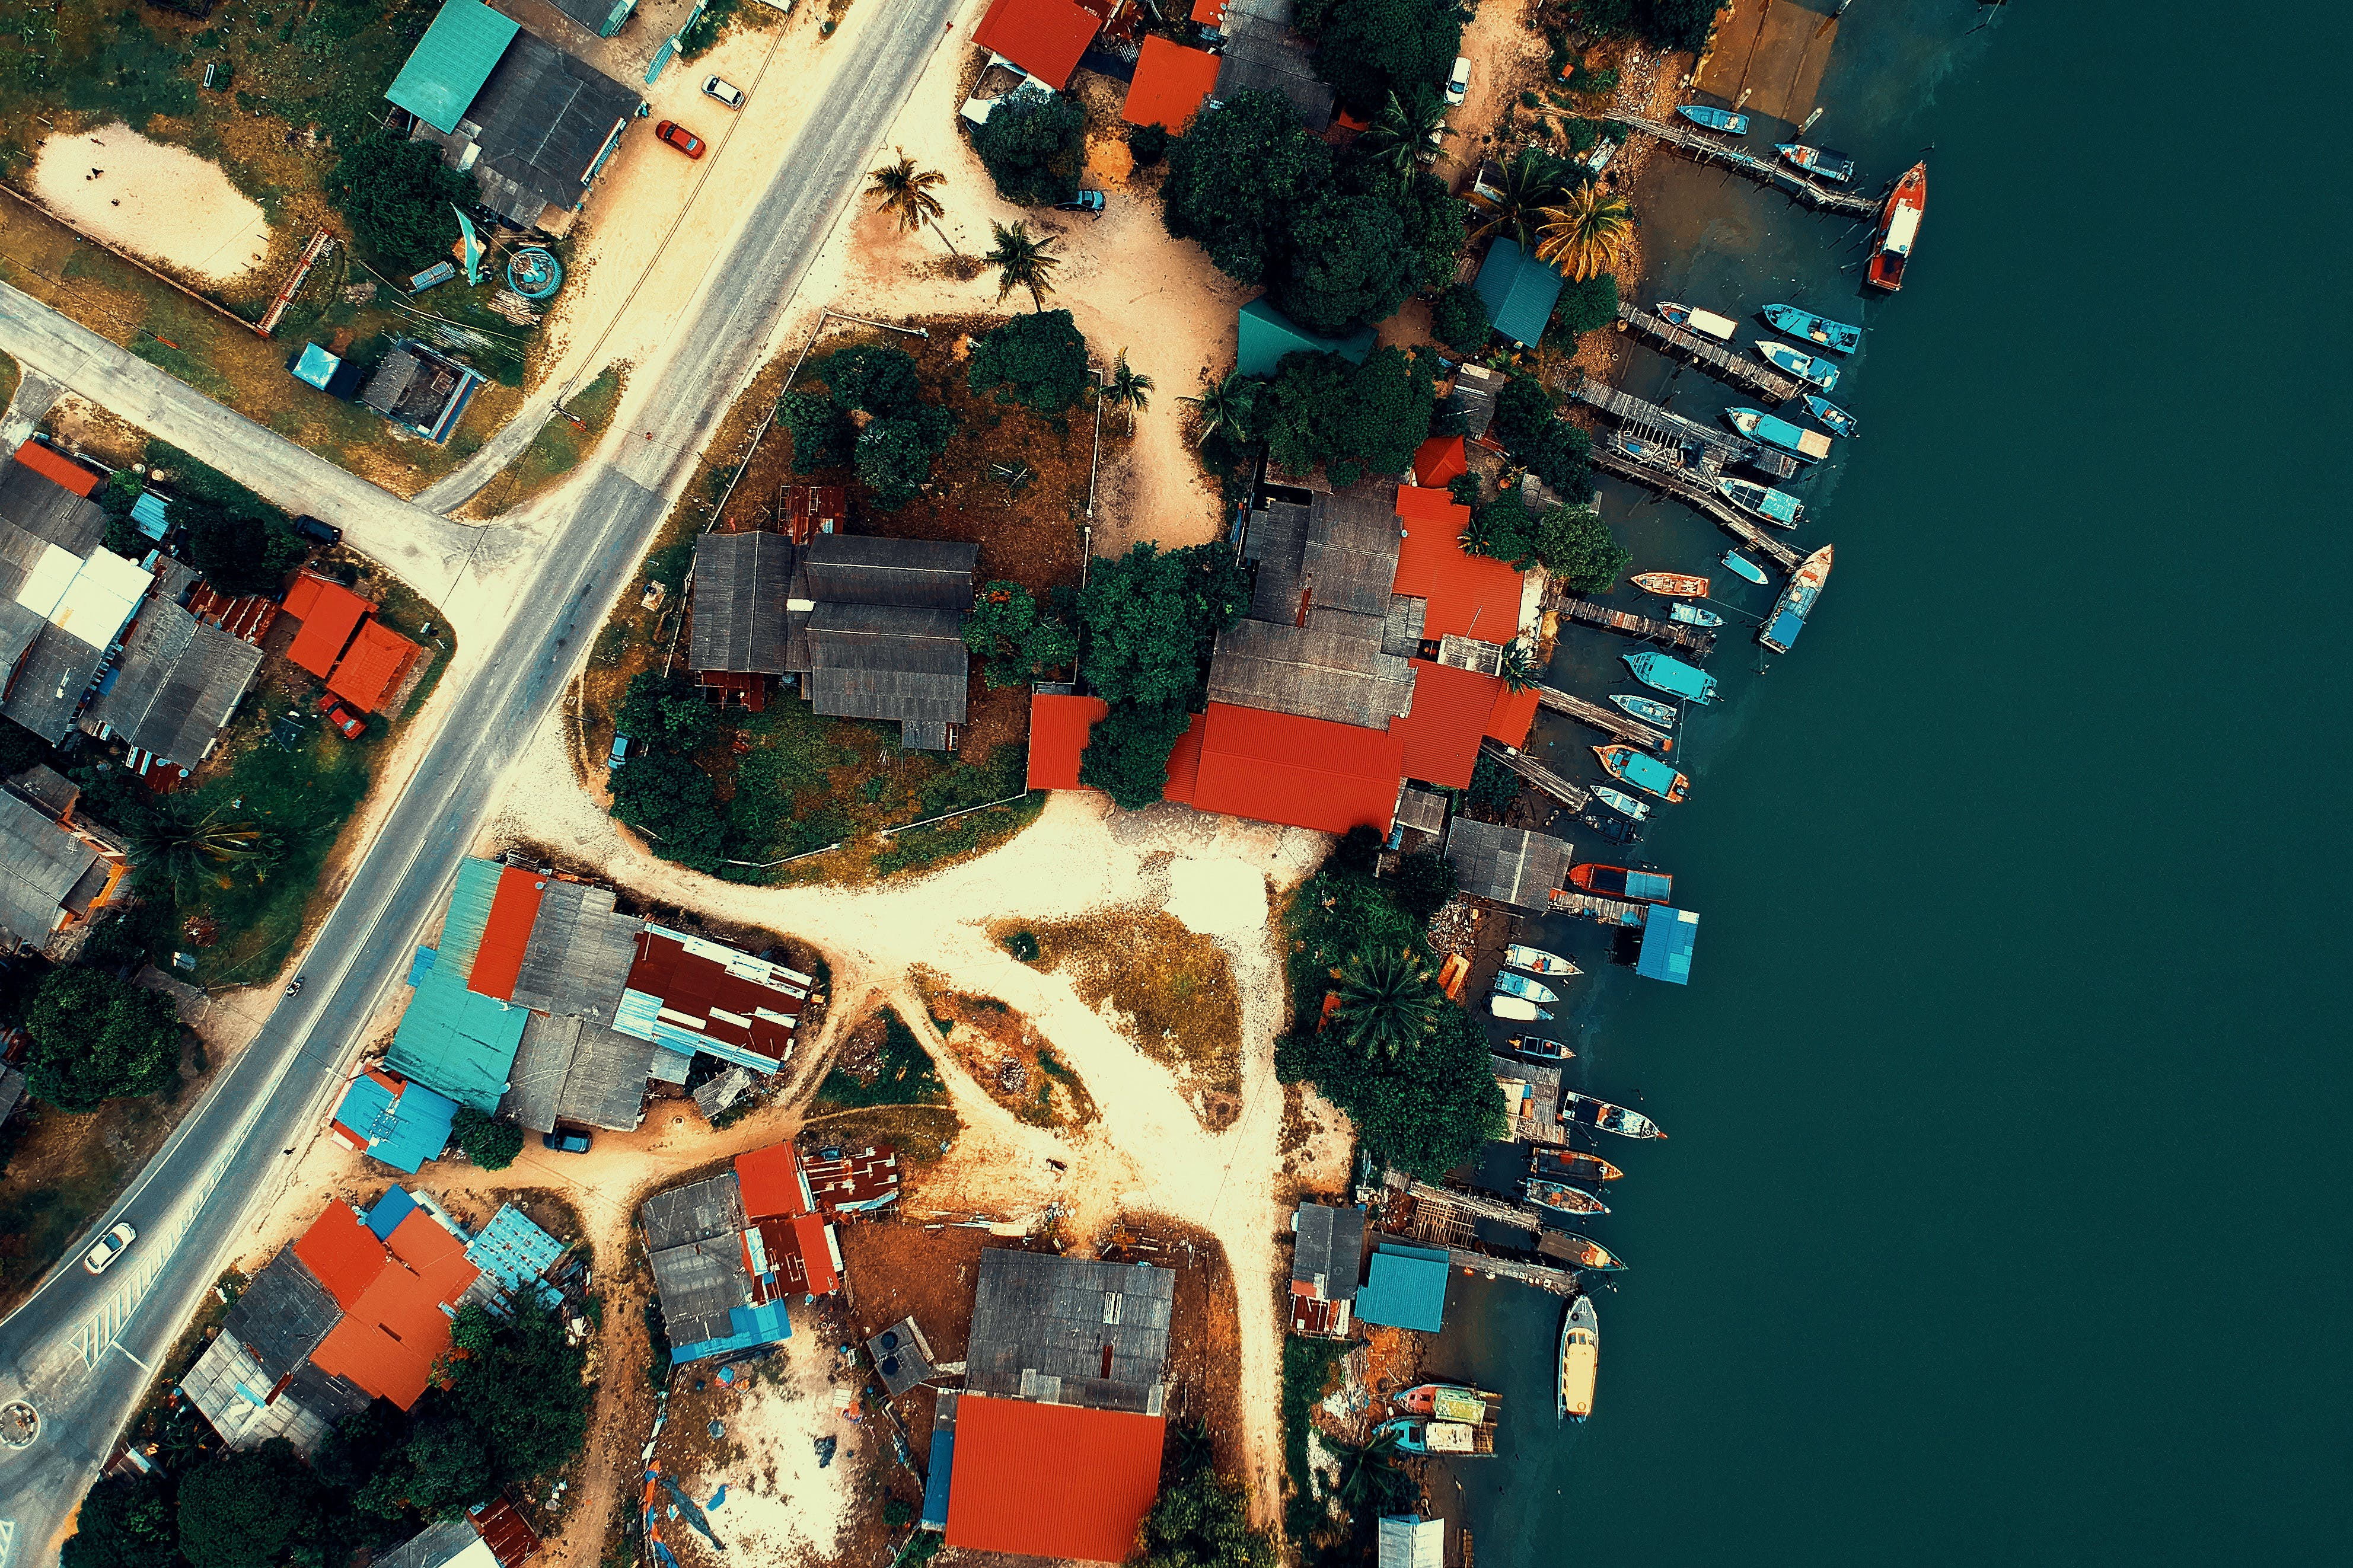 Aerial View of Buildings and Roads Near Sea